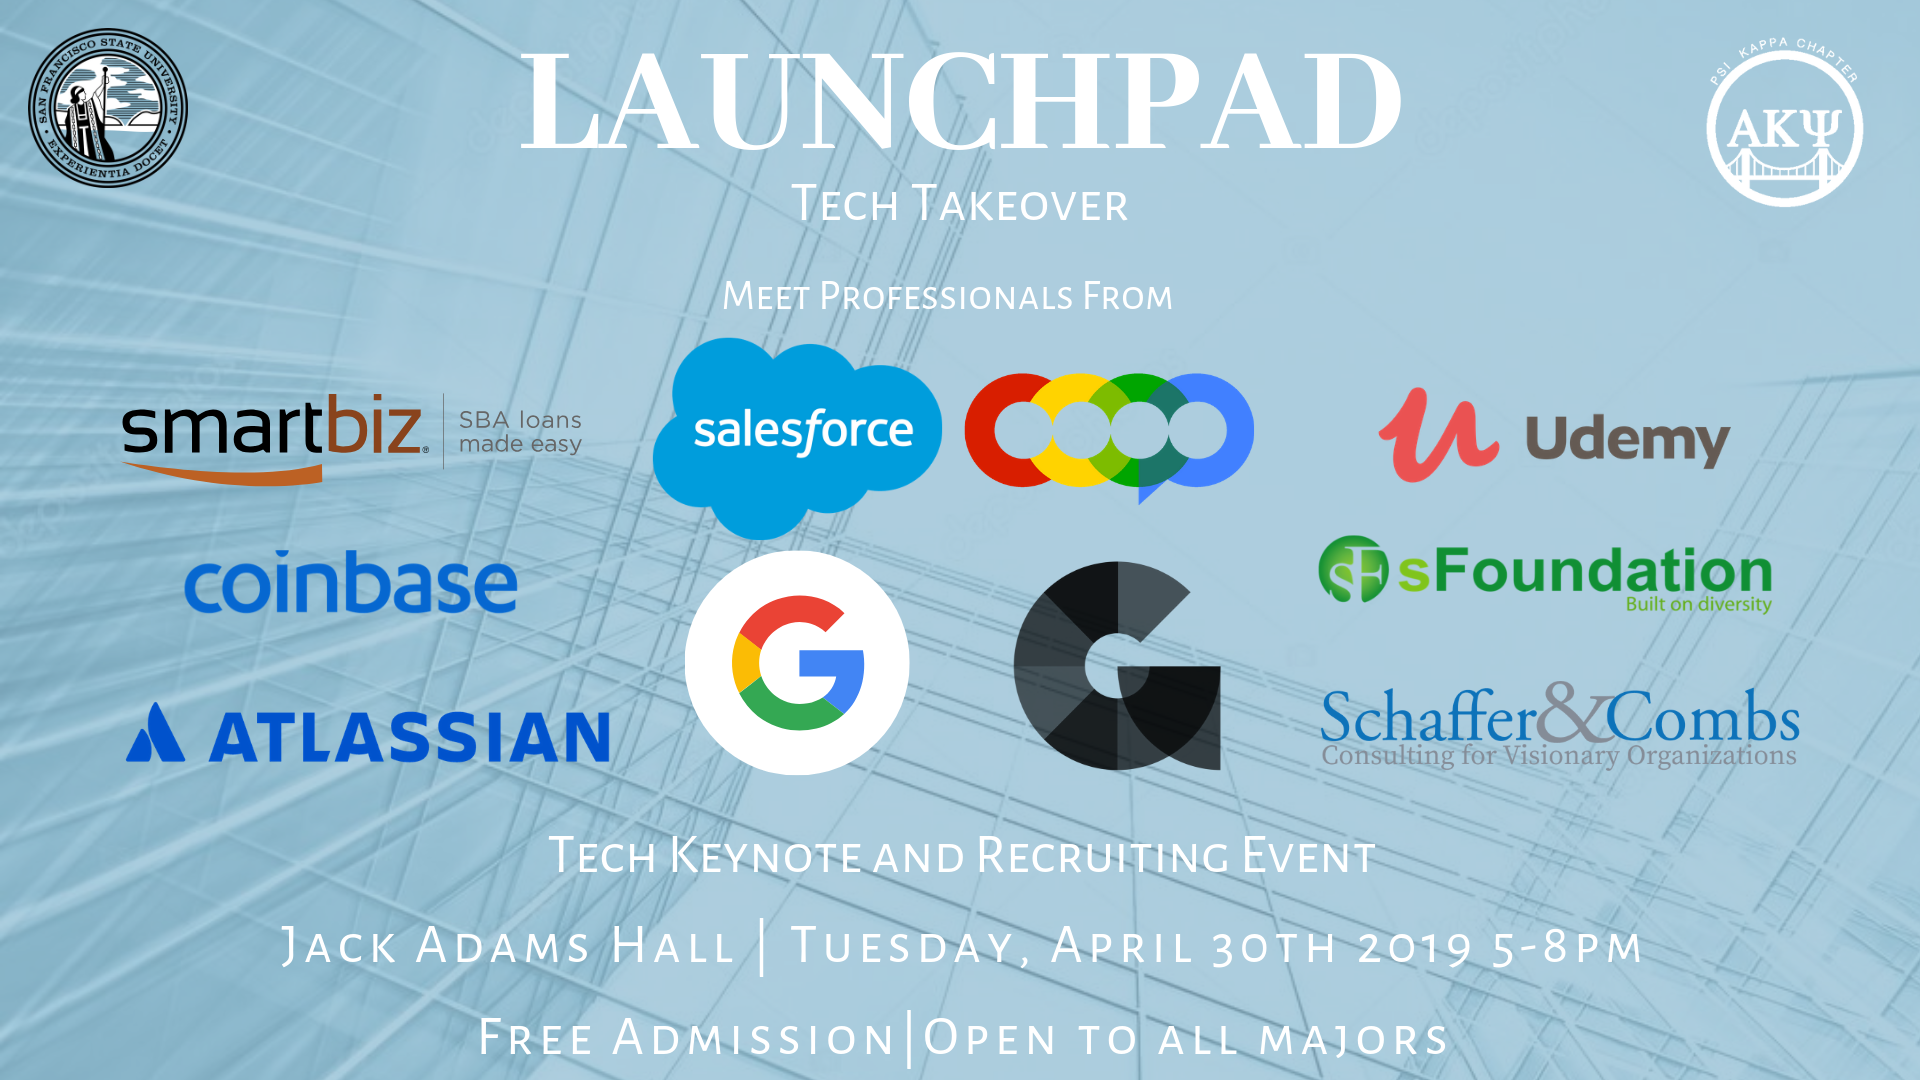 Launchpad — Alpha Kappa Psi